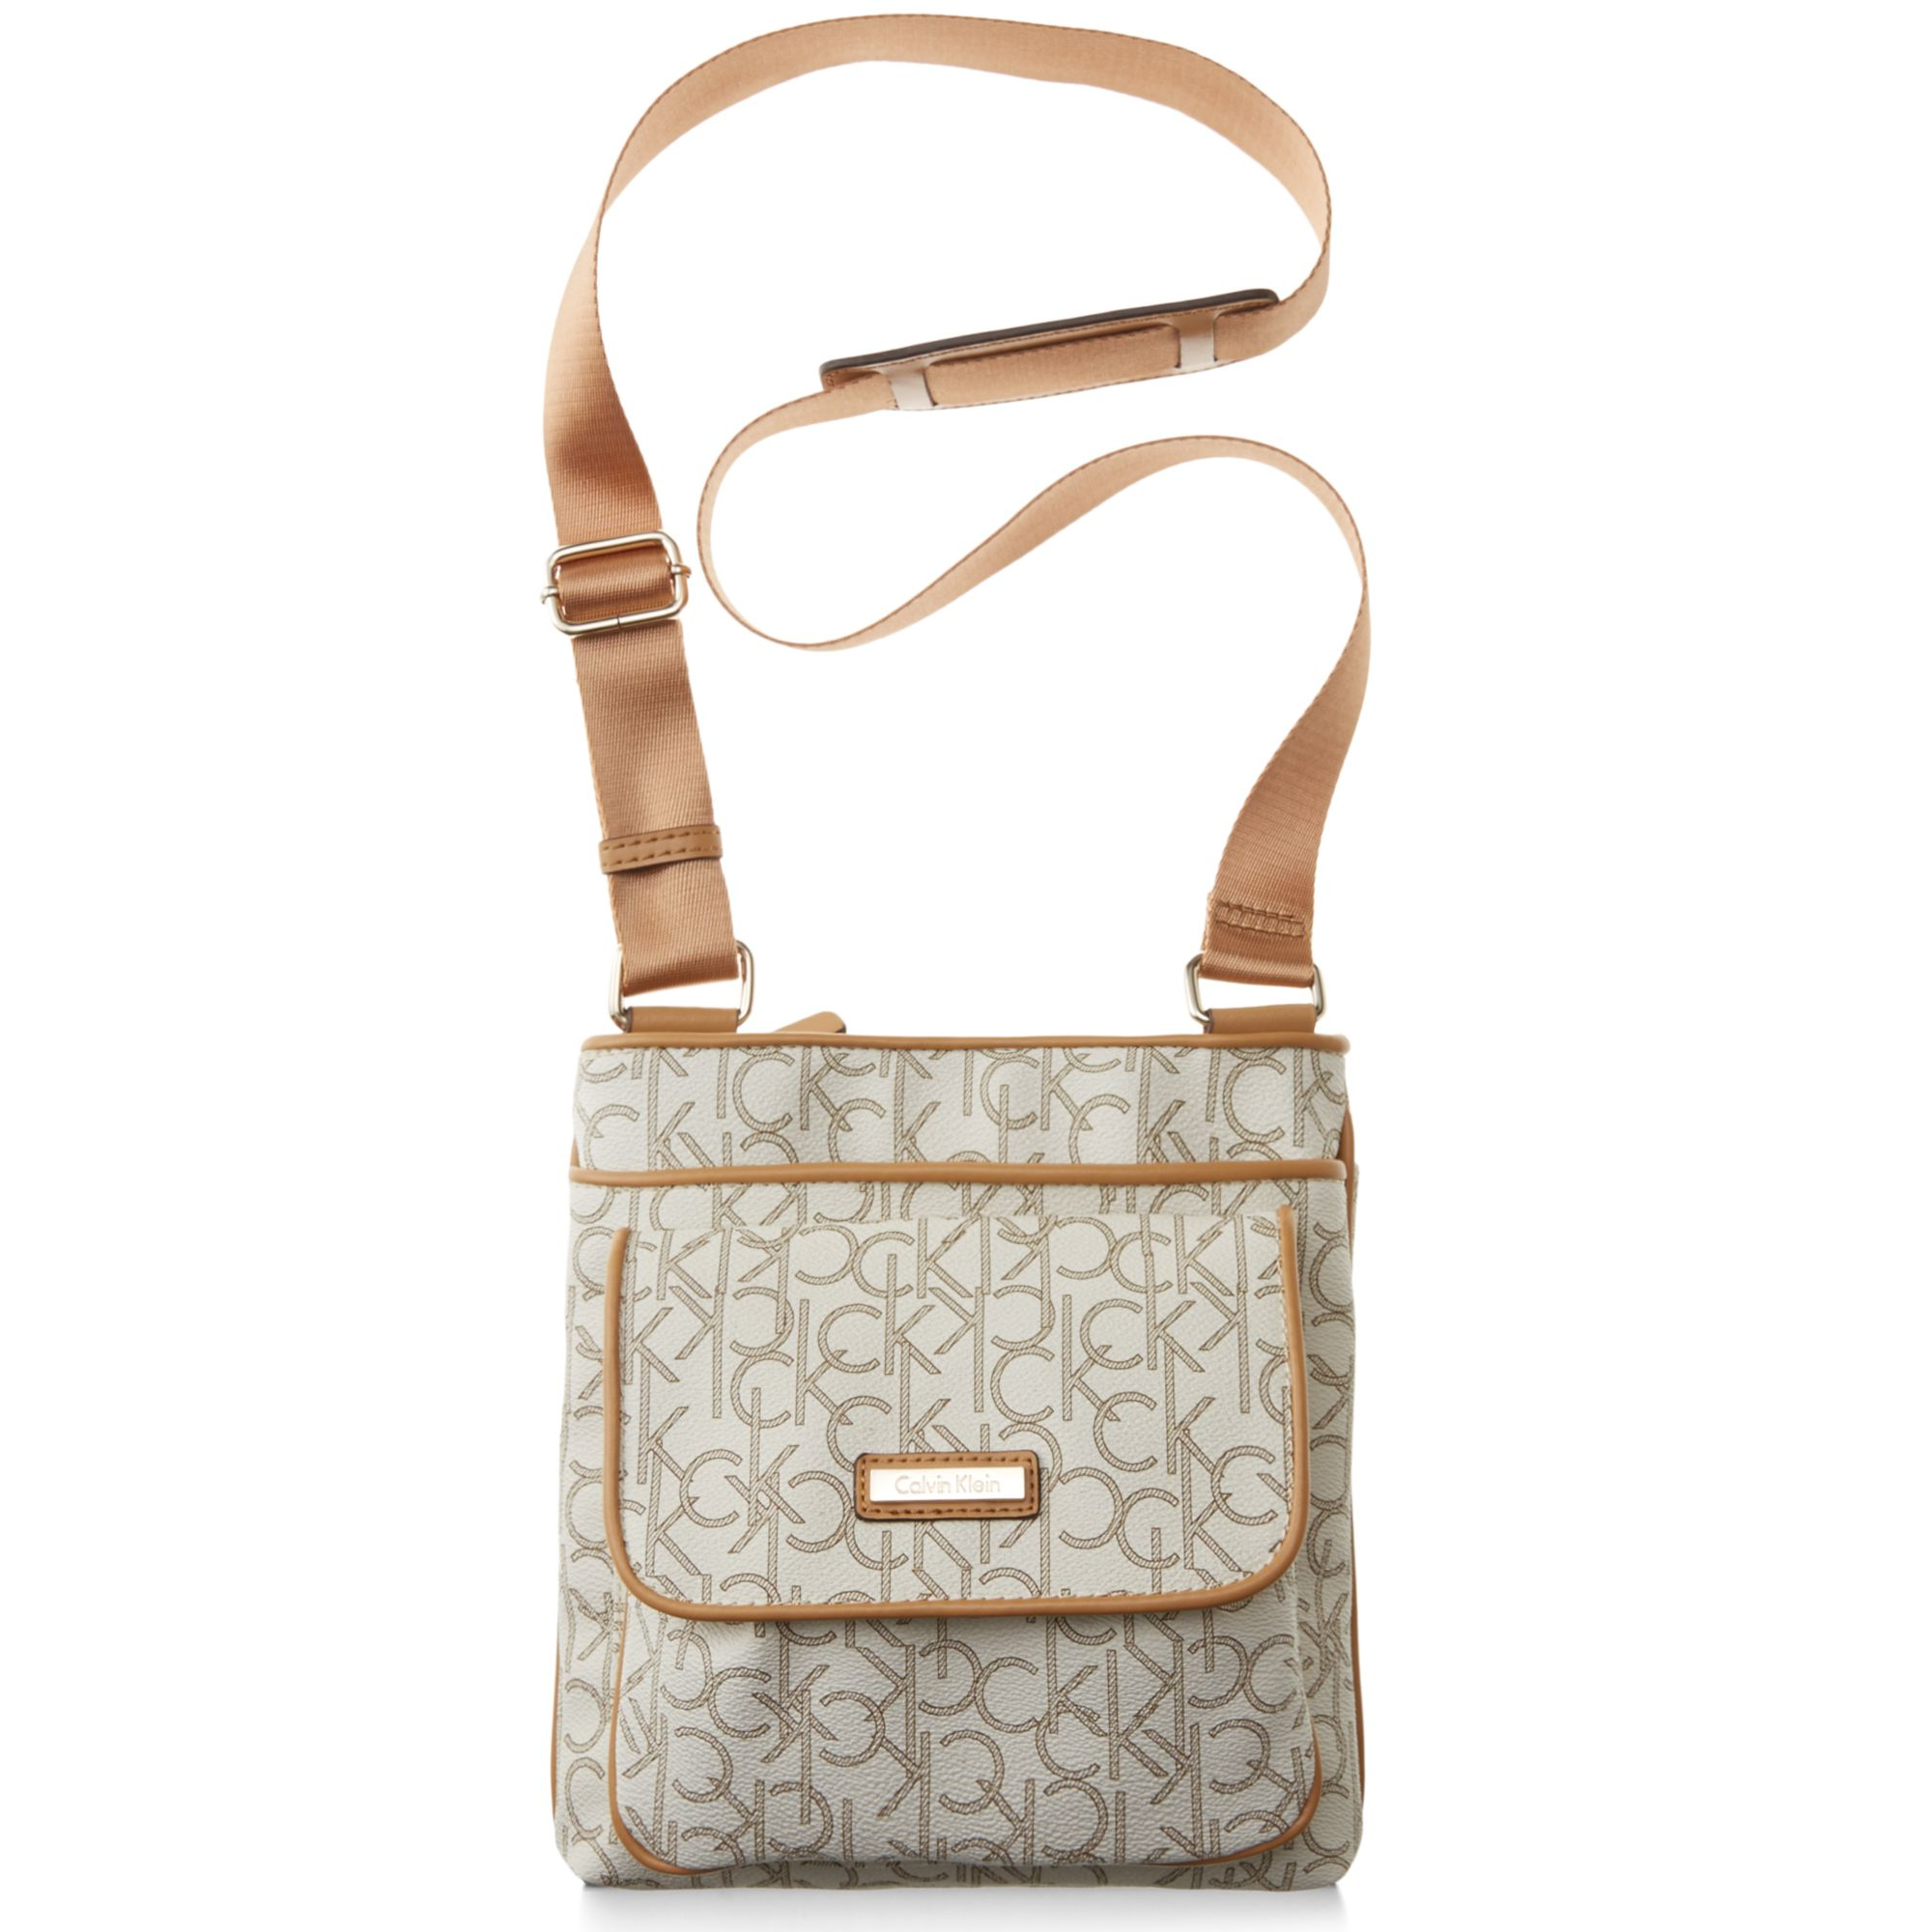 8caabd09f Gallery. Previously sold at: Macy's · Women's Calvin Klein Cross-Body Bags